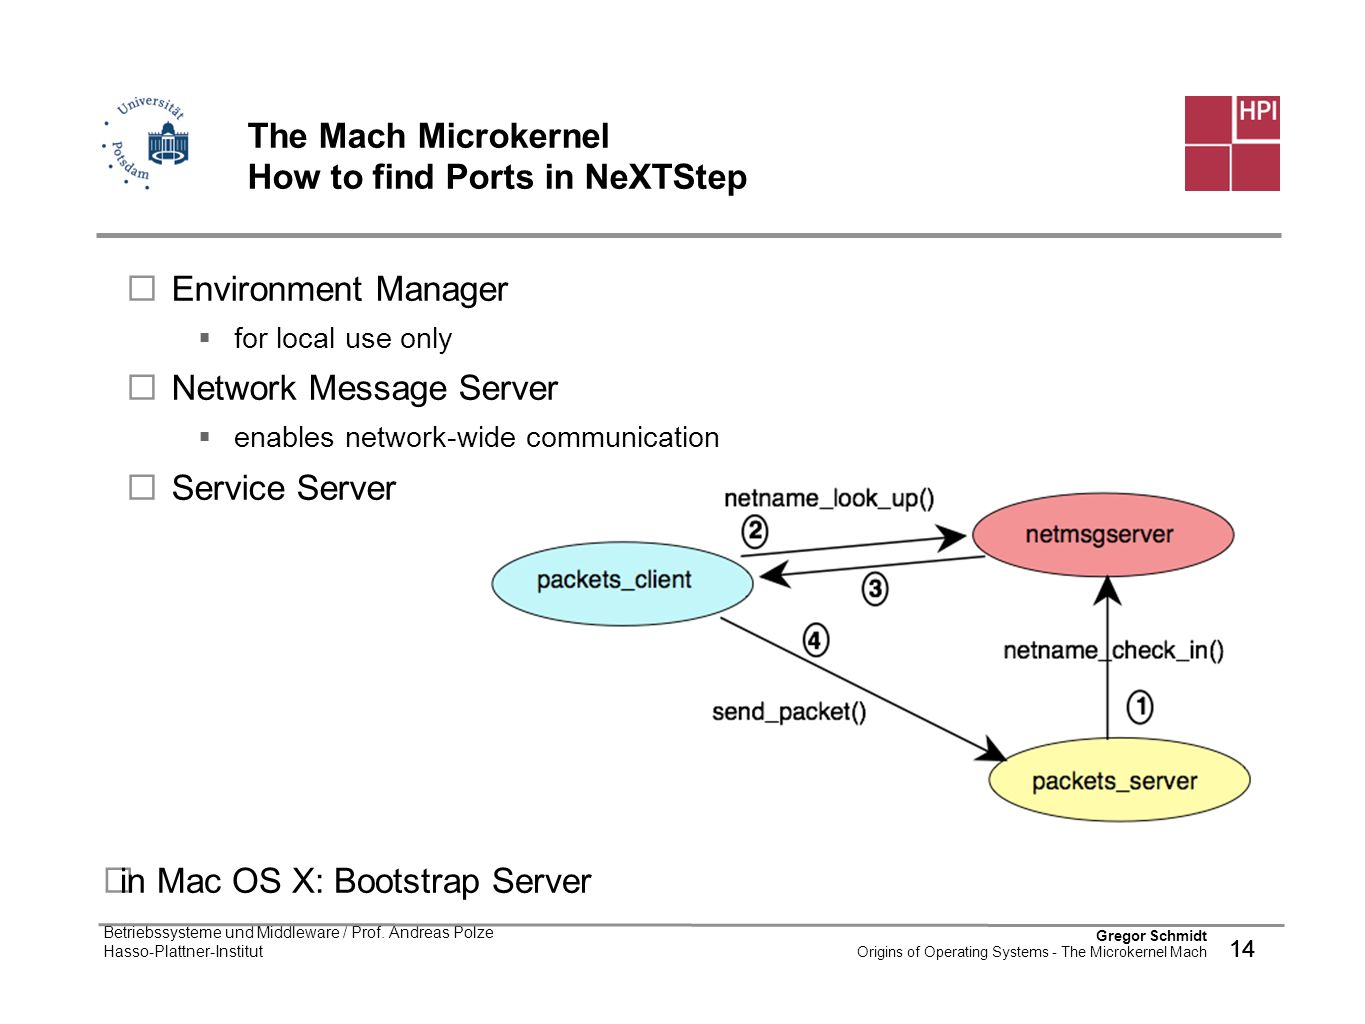 The Mach Microkernel How to find Ports in NeXTStep